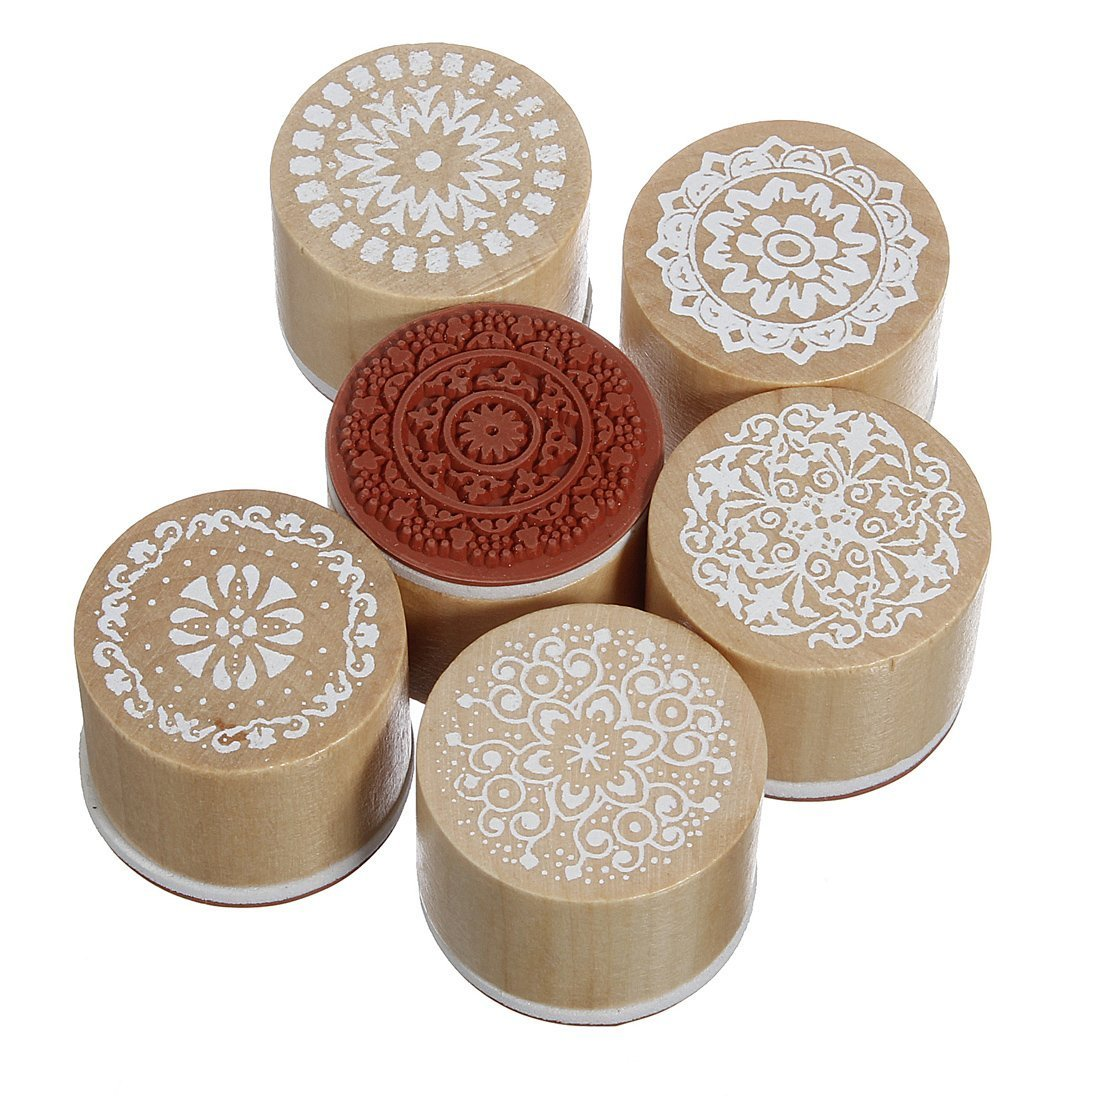 Ruikey Wooden Stamper Stamp Floral Round Handwriting Craft for Scrapbook Card Making 6pcs